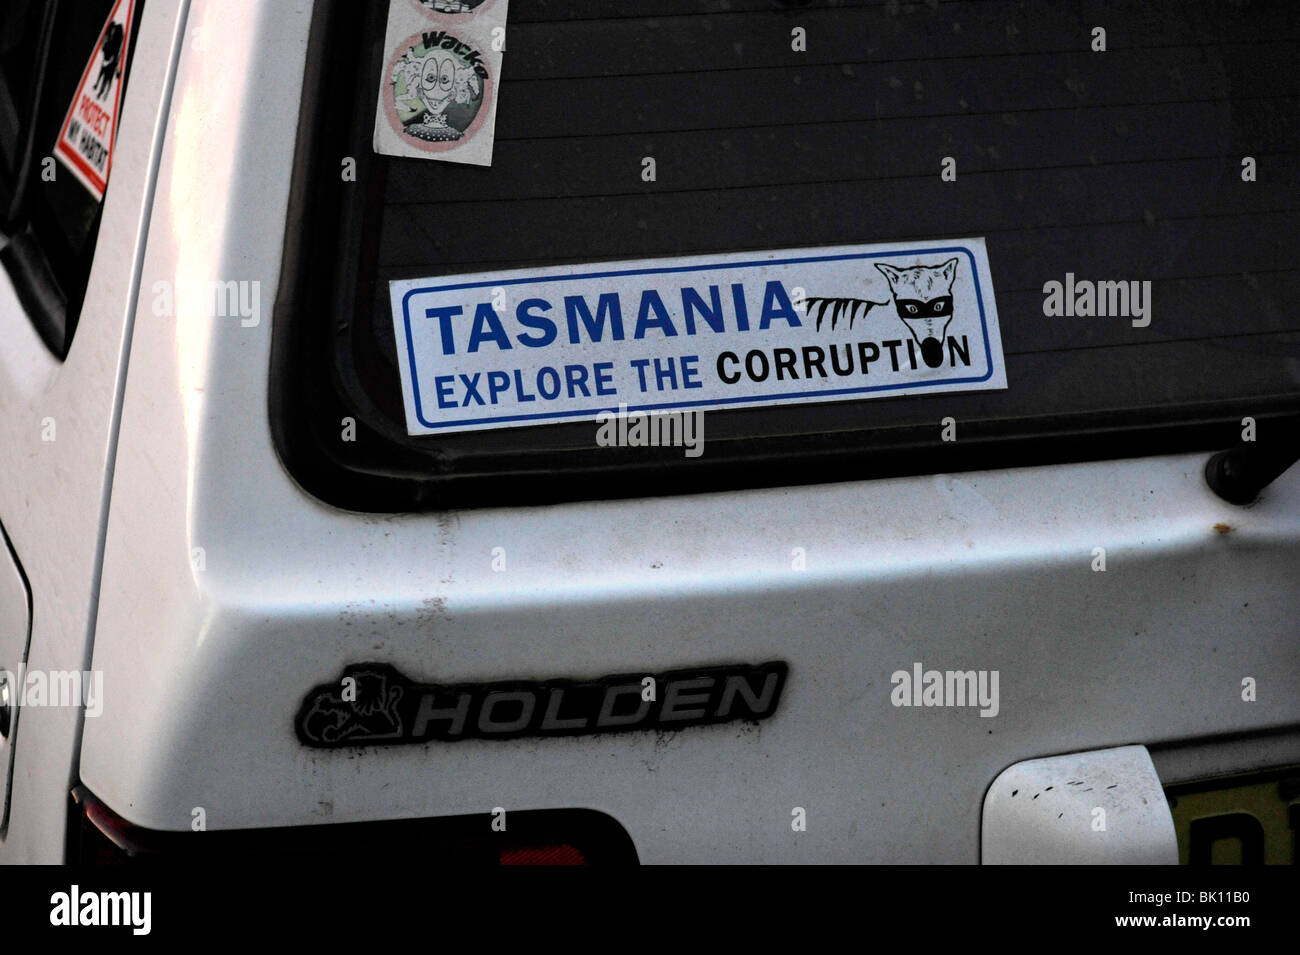 A car sticker pokes fun at Tasmanian politics. - Stock Image